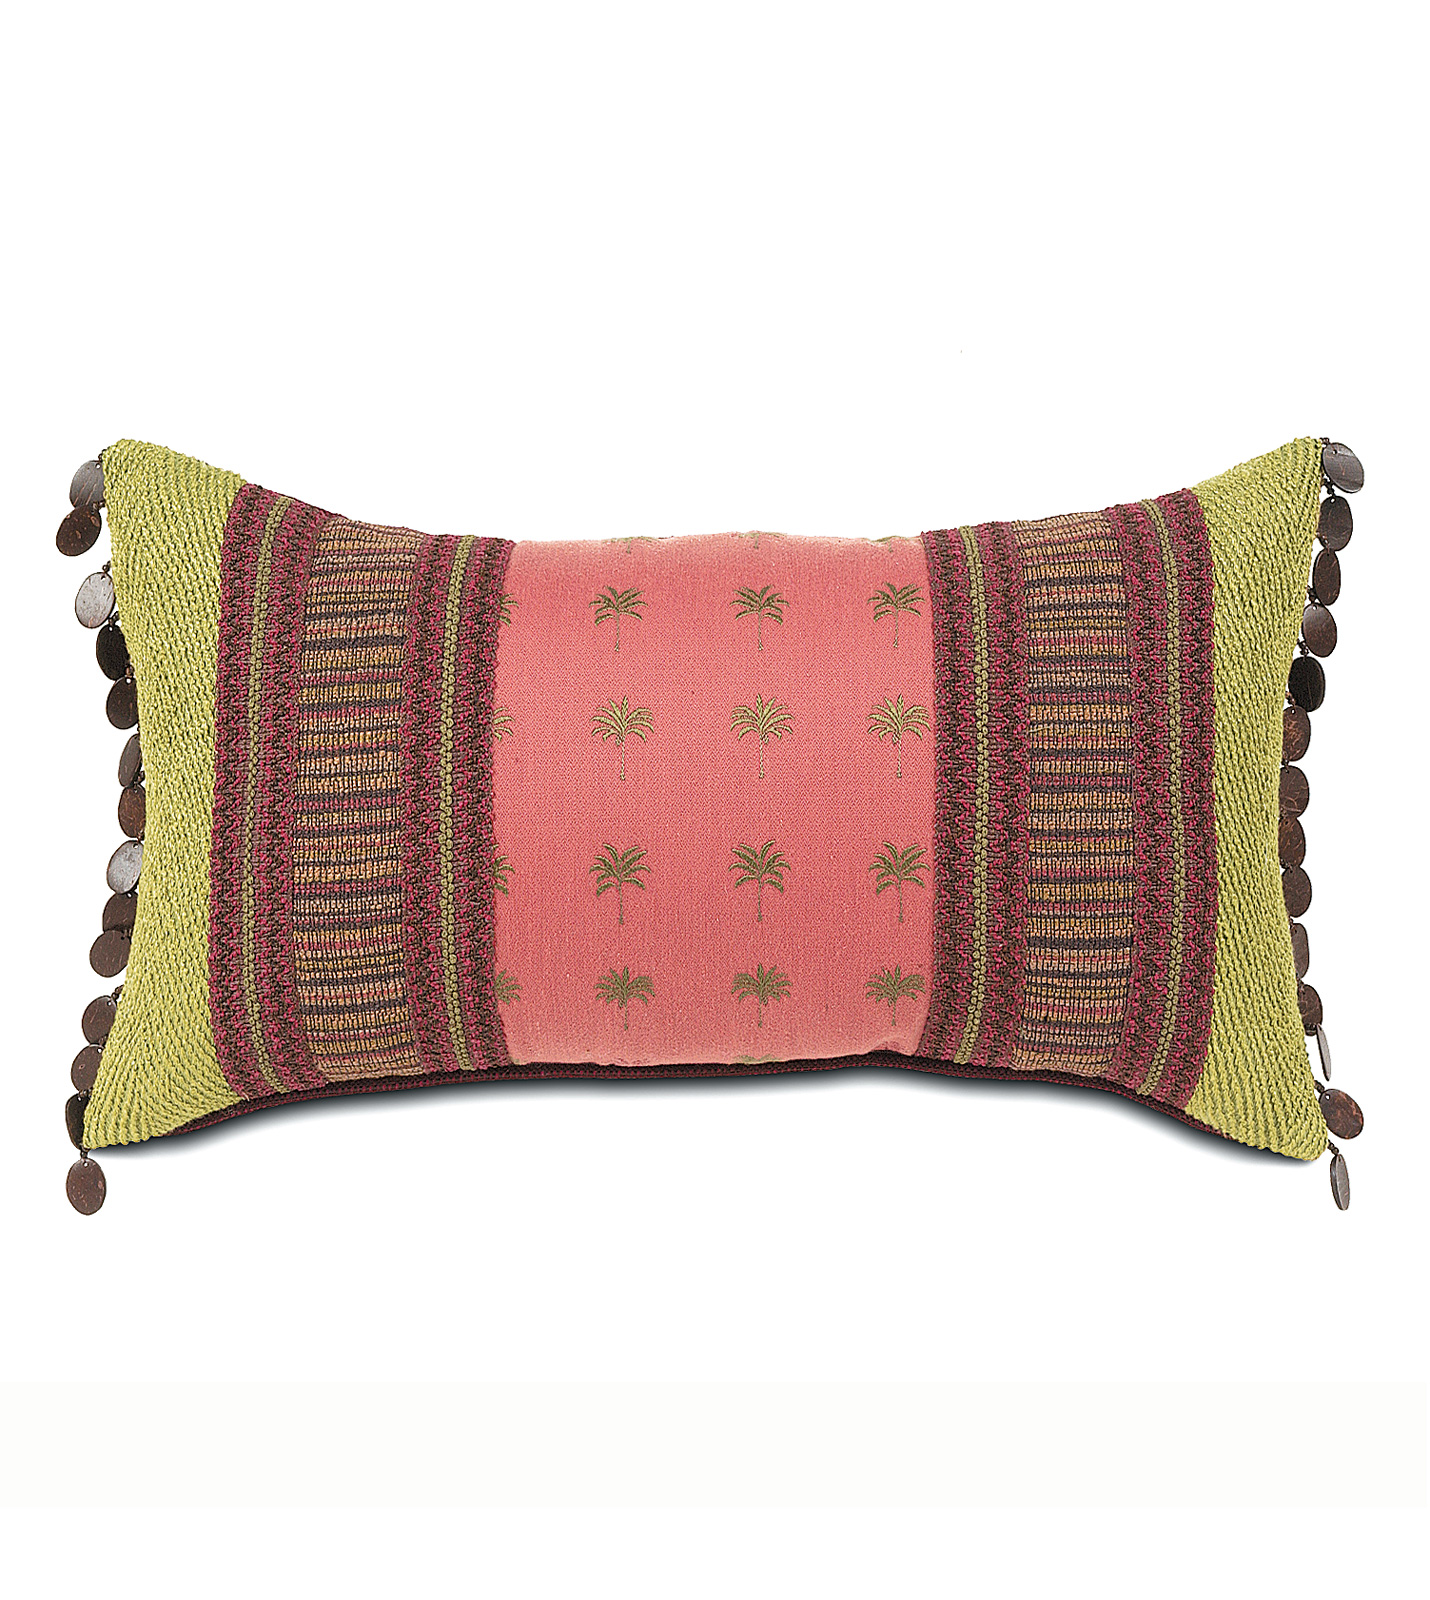 Luxury Bedding by Eastern Accents - PINDO CORAL INSERT COLLAGE